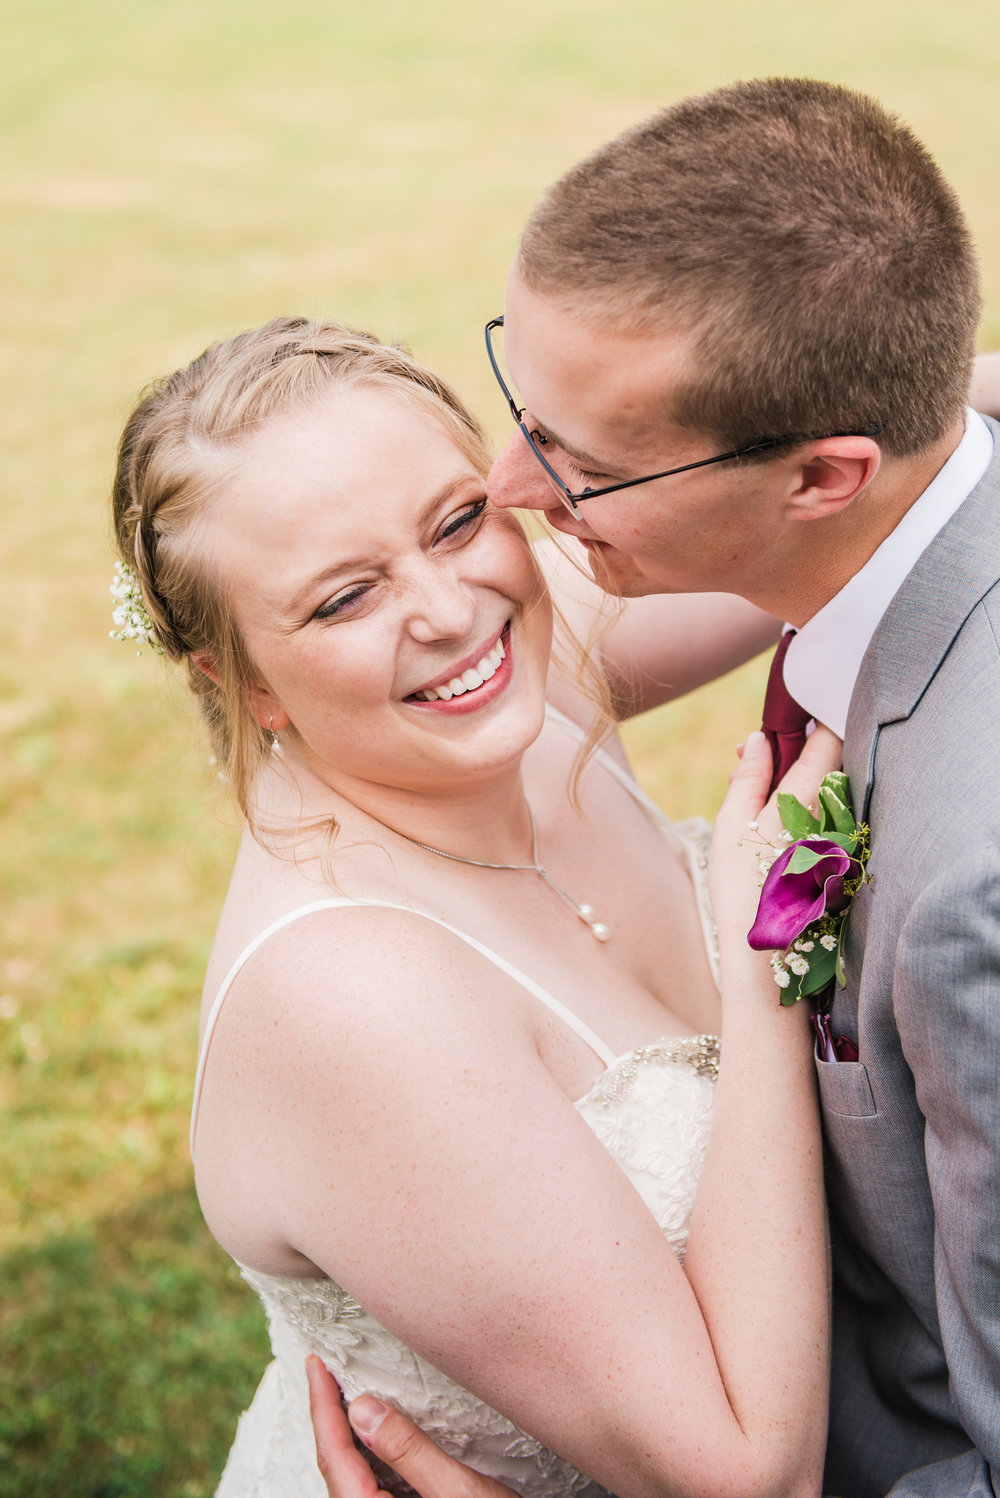 JILLSTUDIO_MKJ_Farms_Central_NY_Wedding_Rochester_NY_Photographer_DSC_8518.jpg